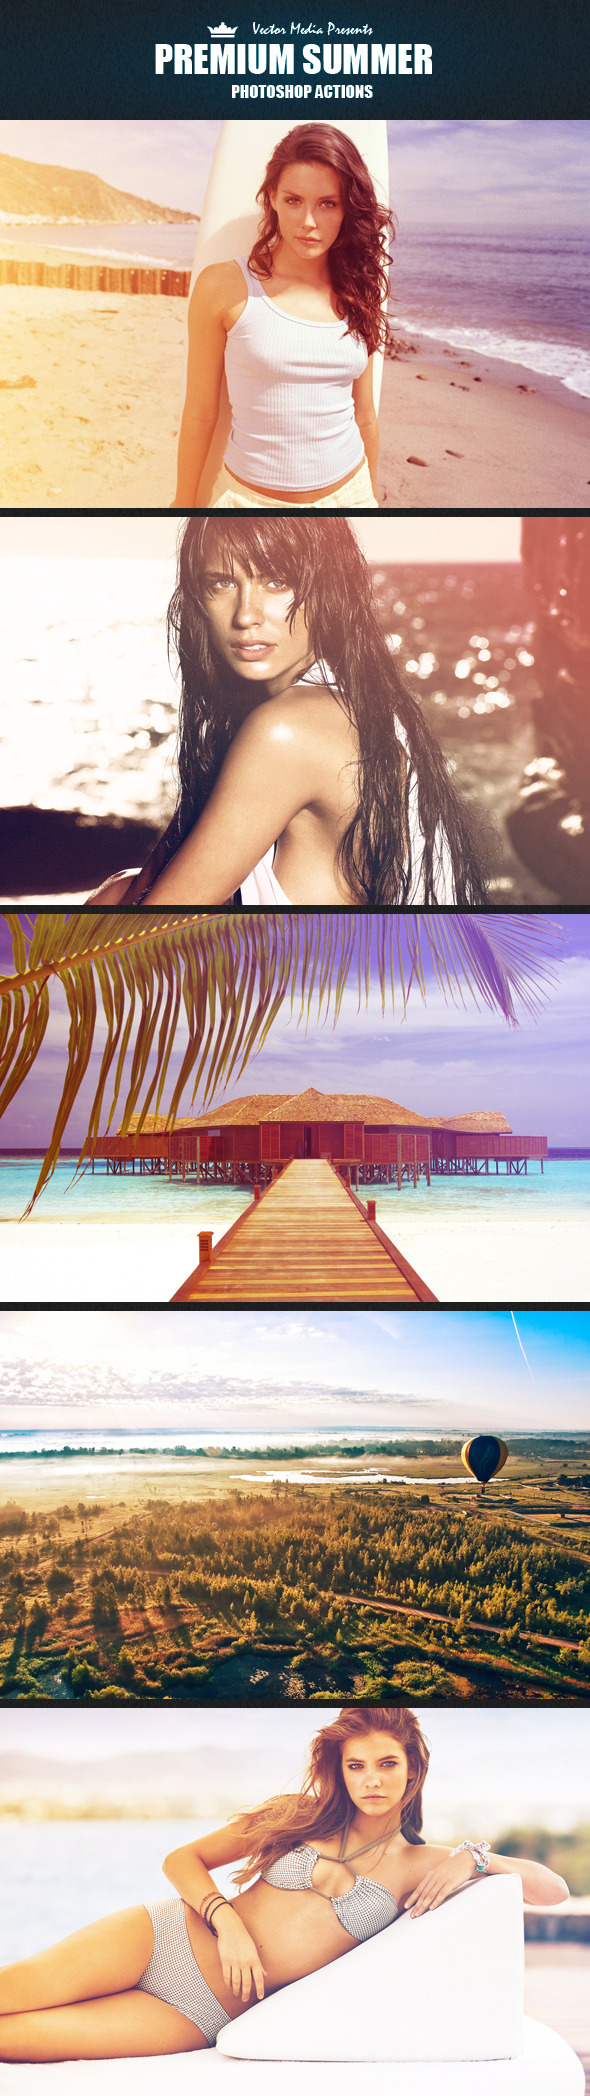 Premium Summer - Photoshop Actions - Photo Effects Actions